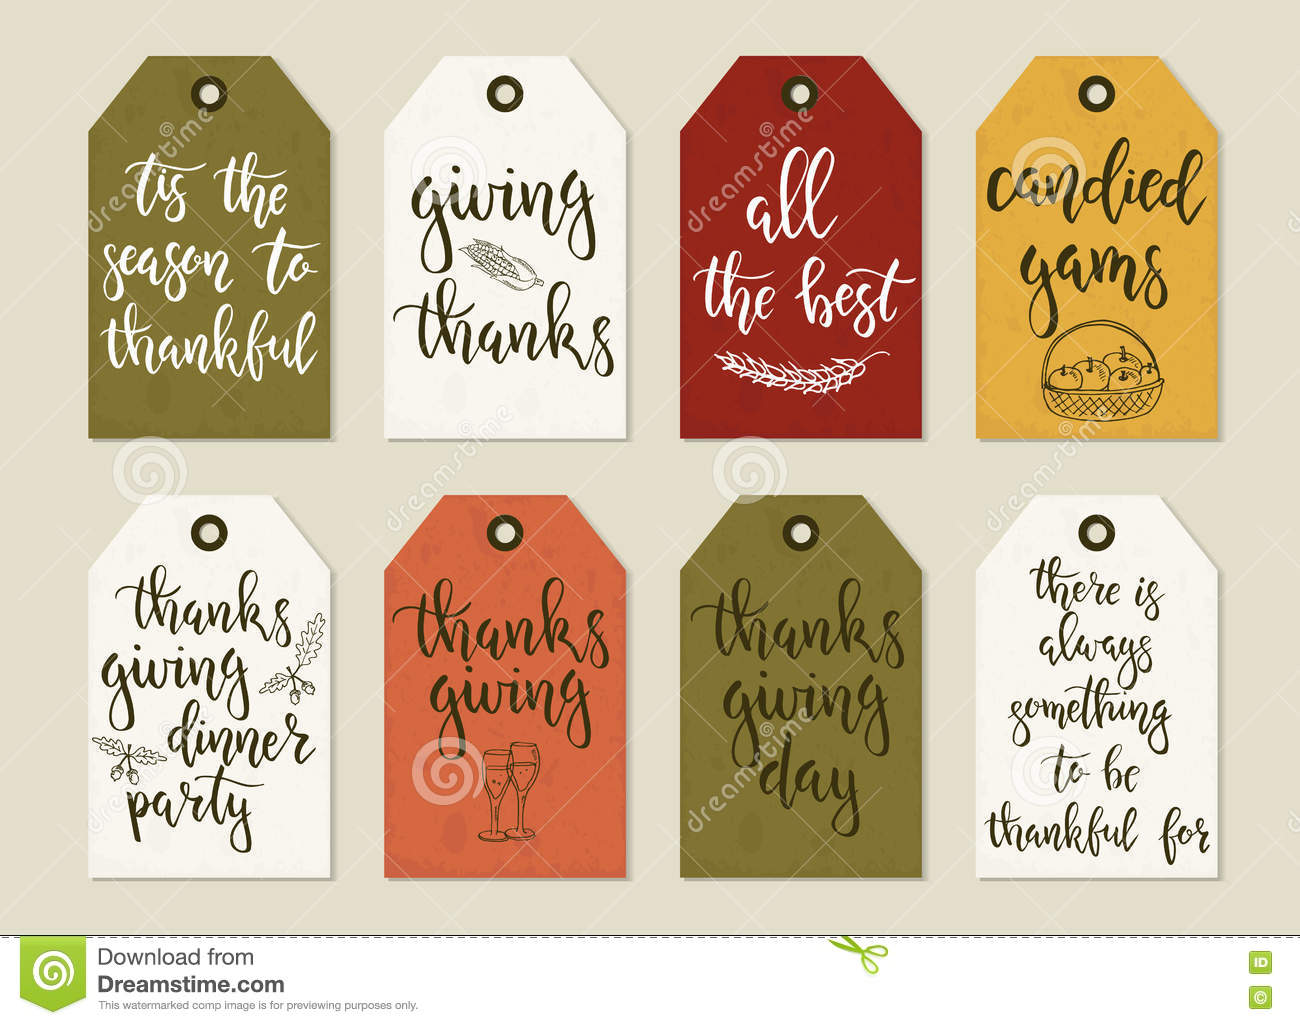 Thanksgiving Day Vintage Gift Tags And Cards With Calligraphy Stock Vector Illustration Of Natural Scrap 78471441